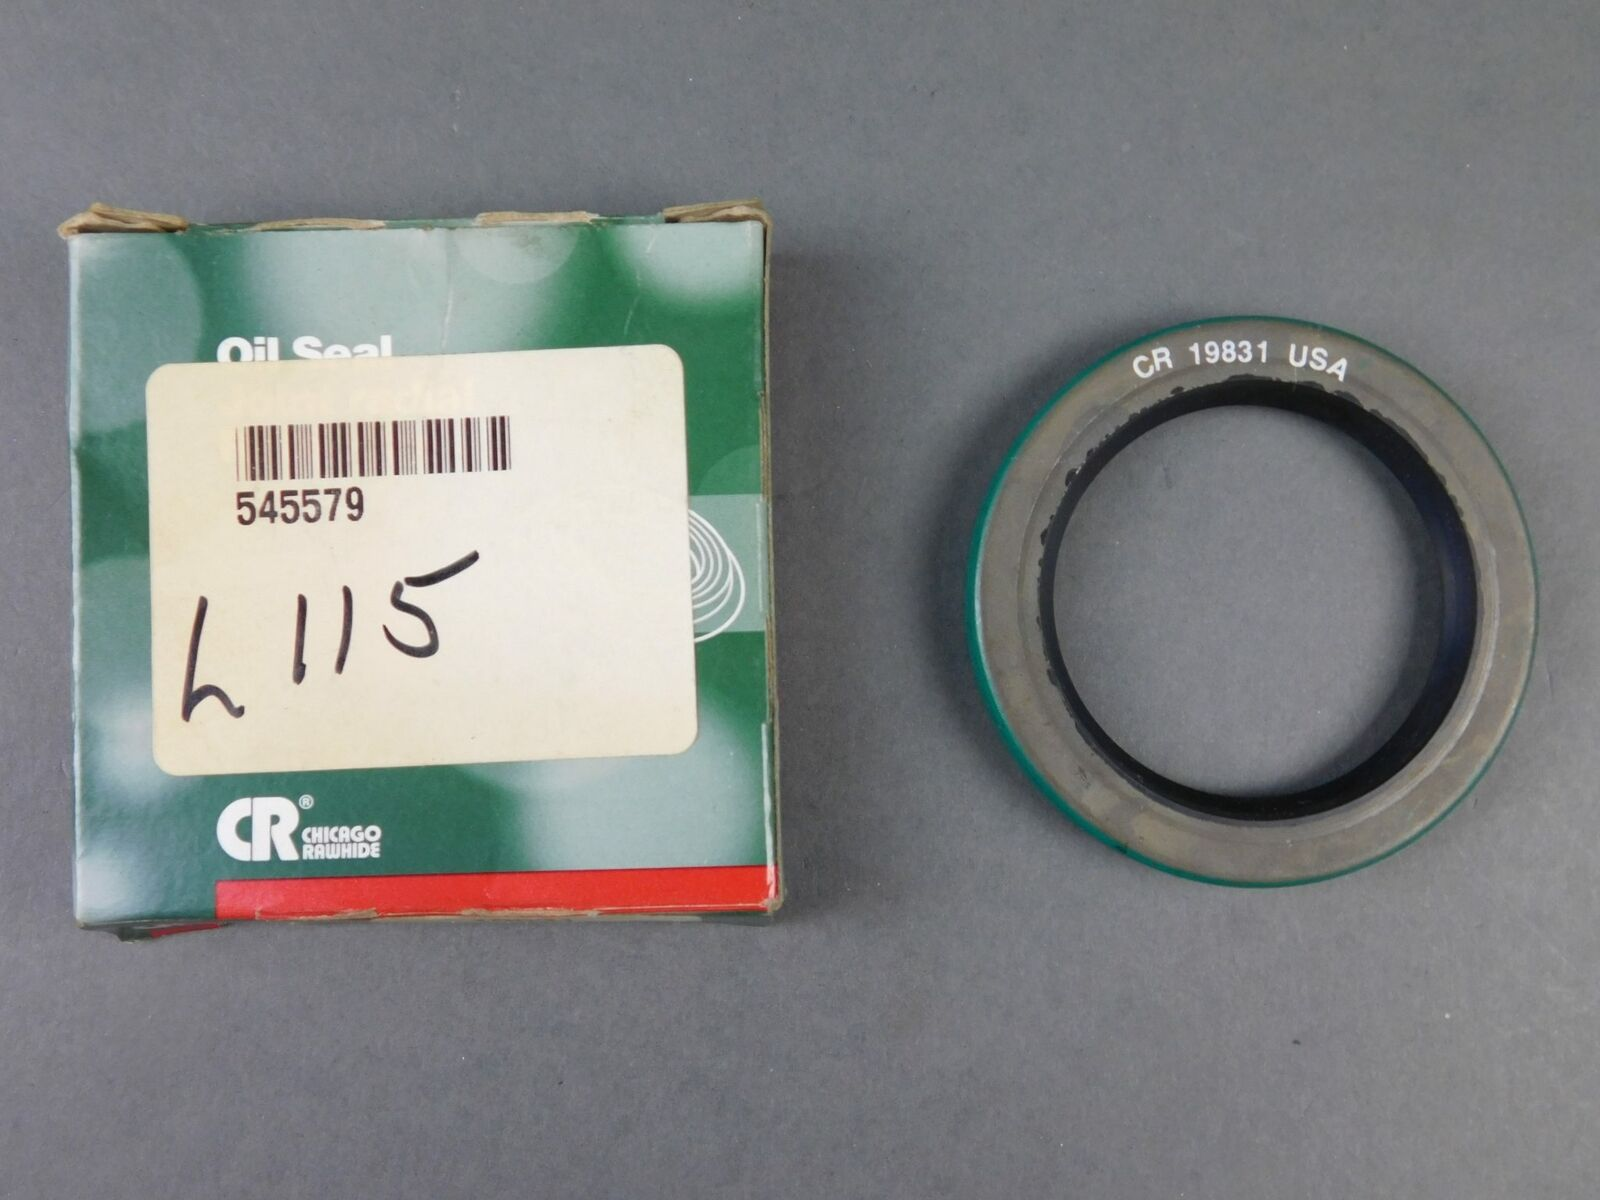 New In Box SKF 19831 Buy it Now = 9 seals